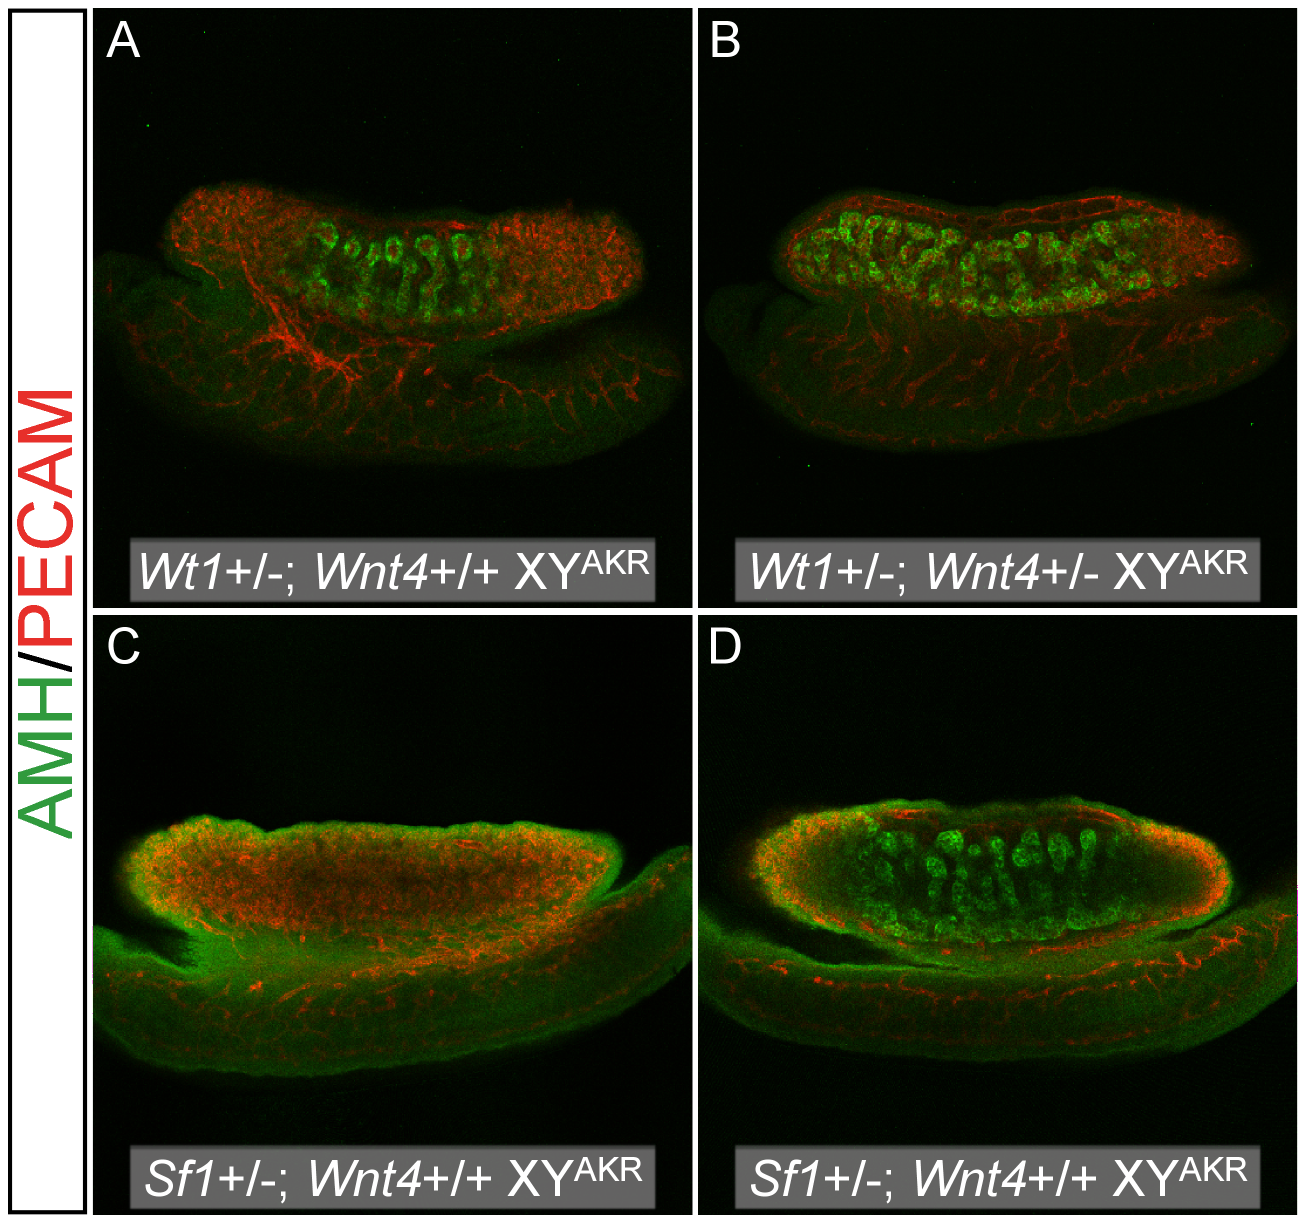 Reduced <i>Wnt4</i> dosage partially rescued cord differentiation in B6 XY genotypes that typically develop ovarian tissue.